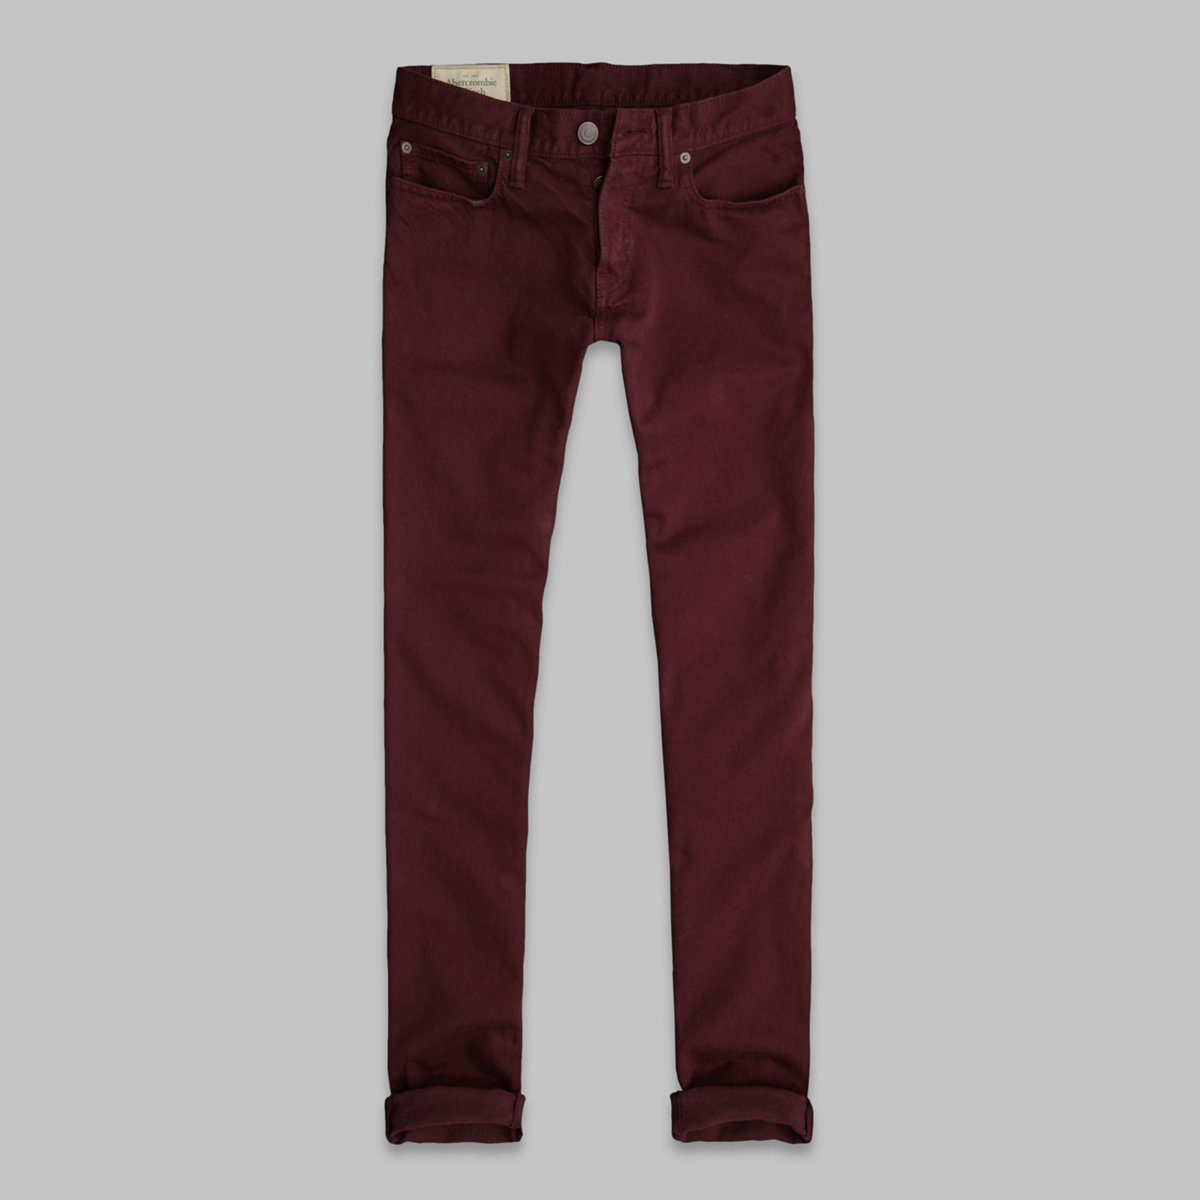 A&F Skinny Button Fly Jeans